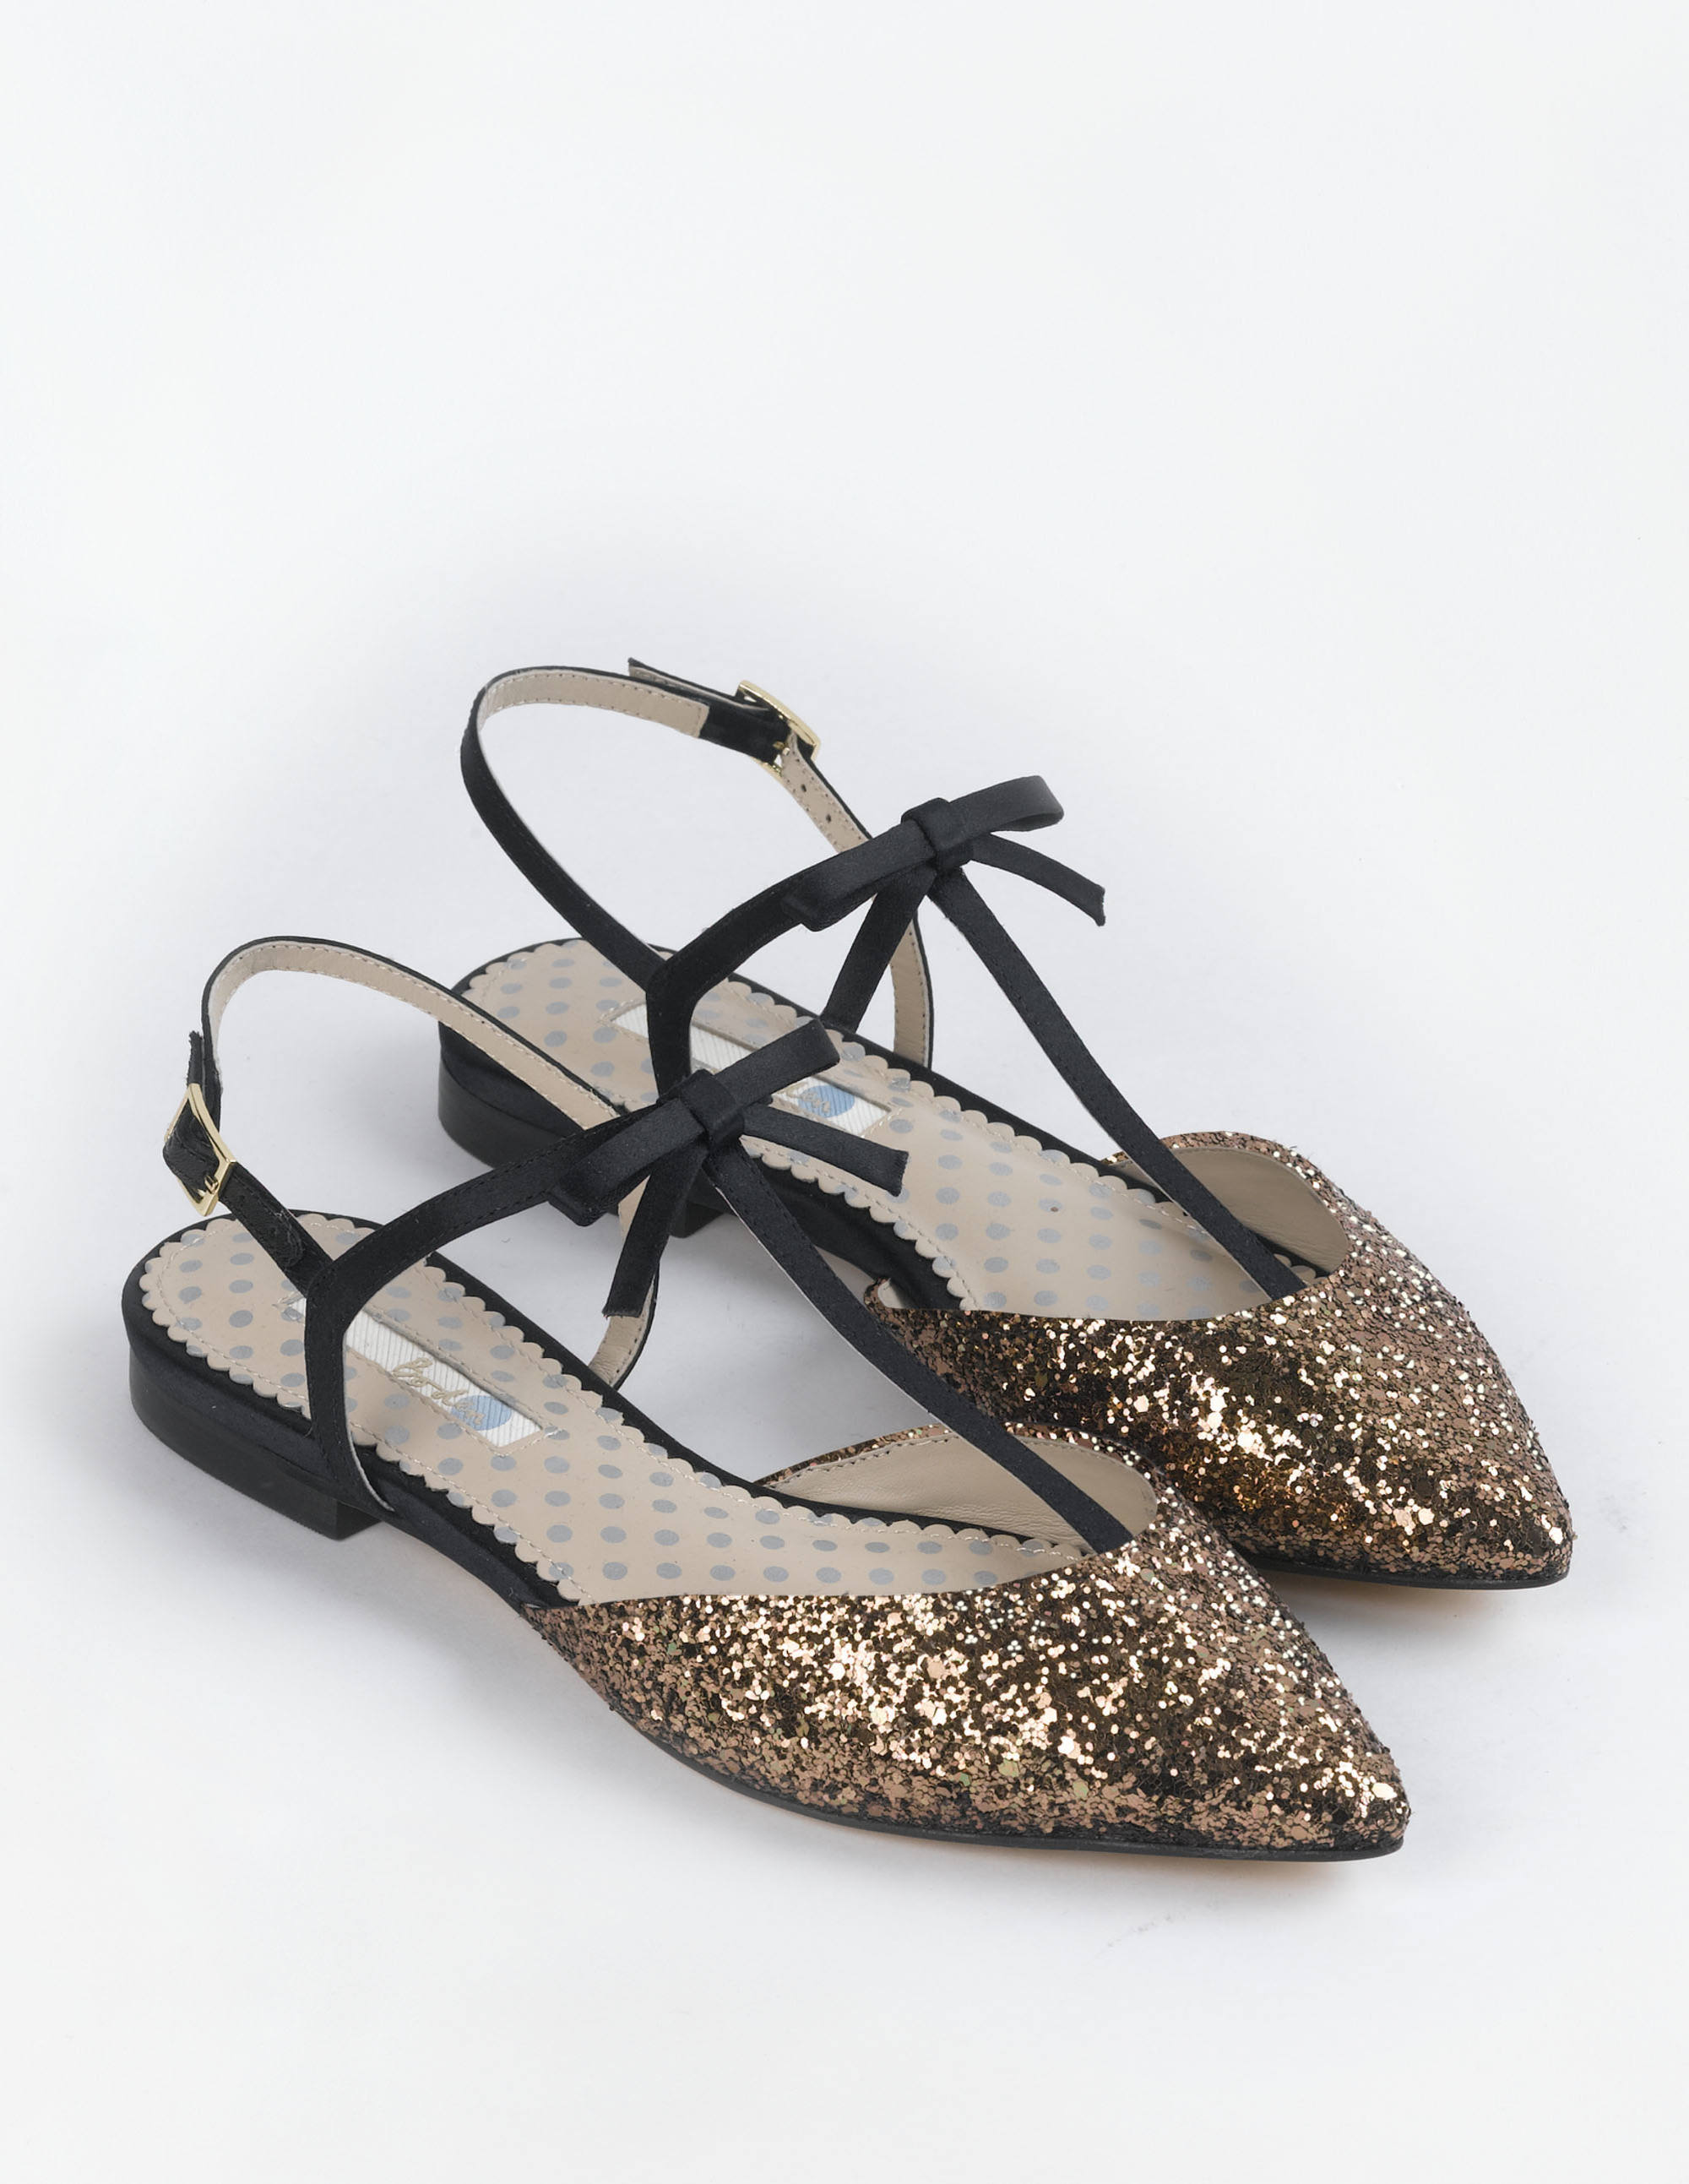 Boden sparkly shoe